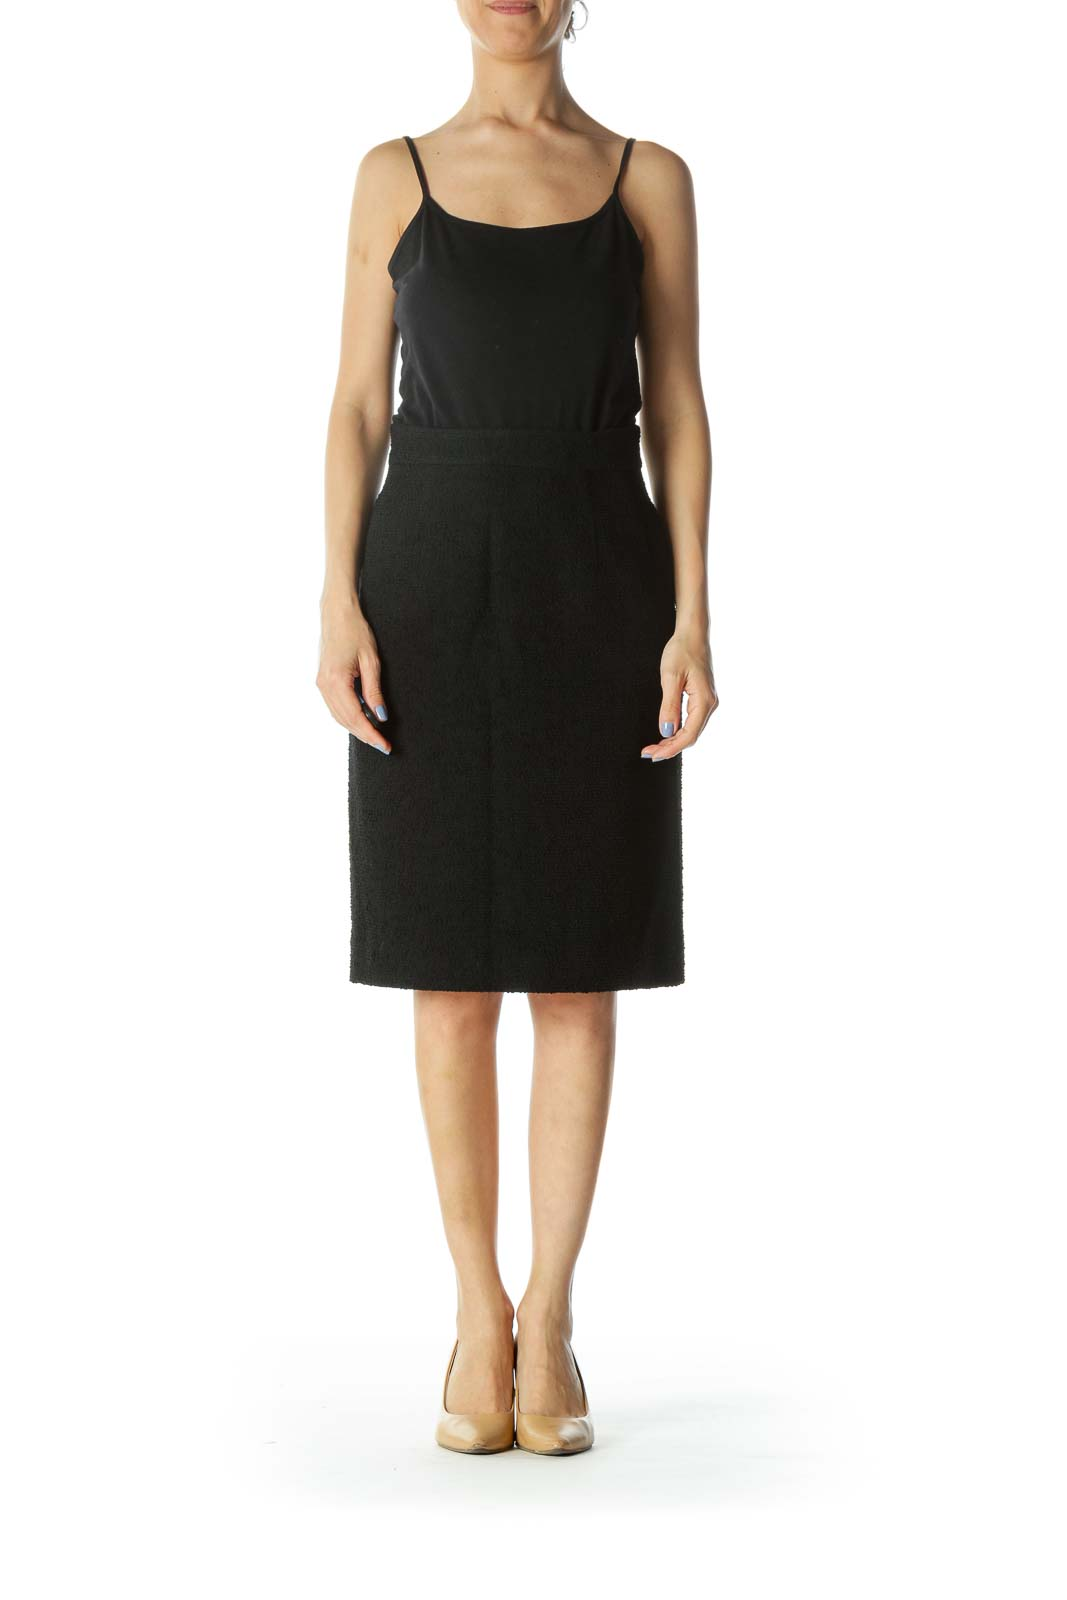 Black Textured Designer Pencil Skirt